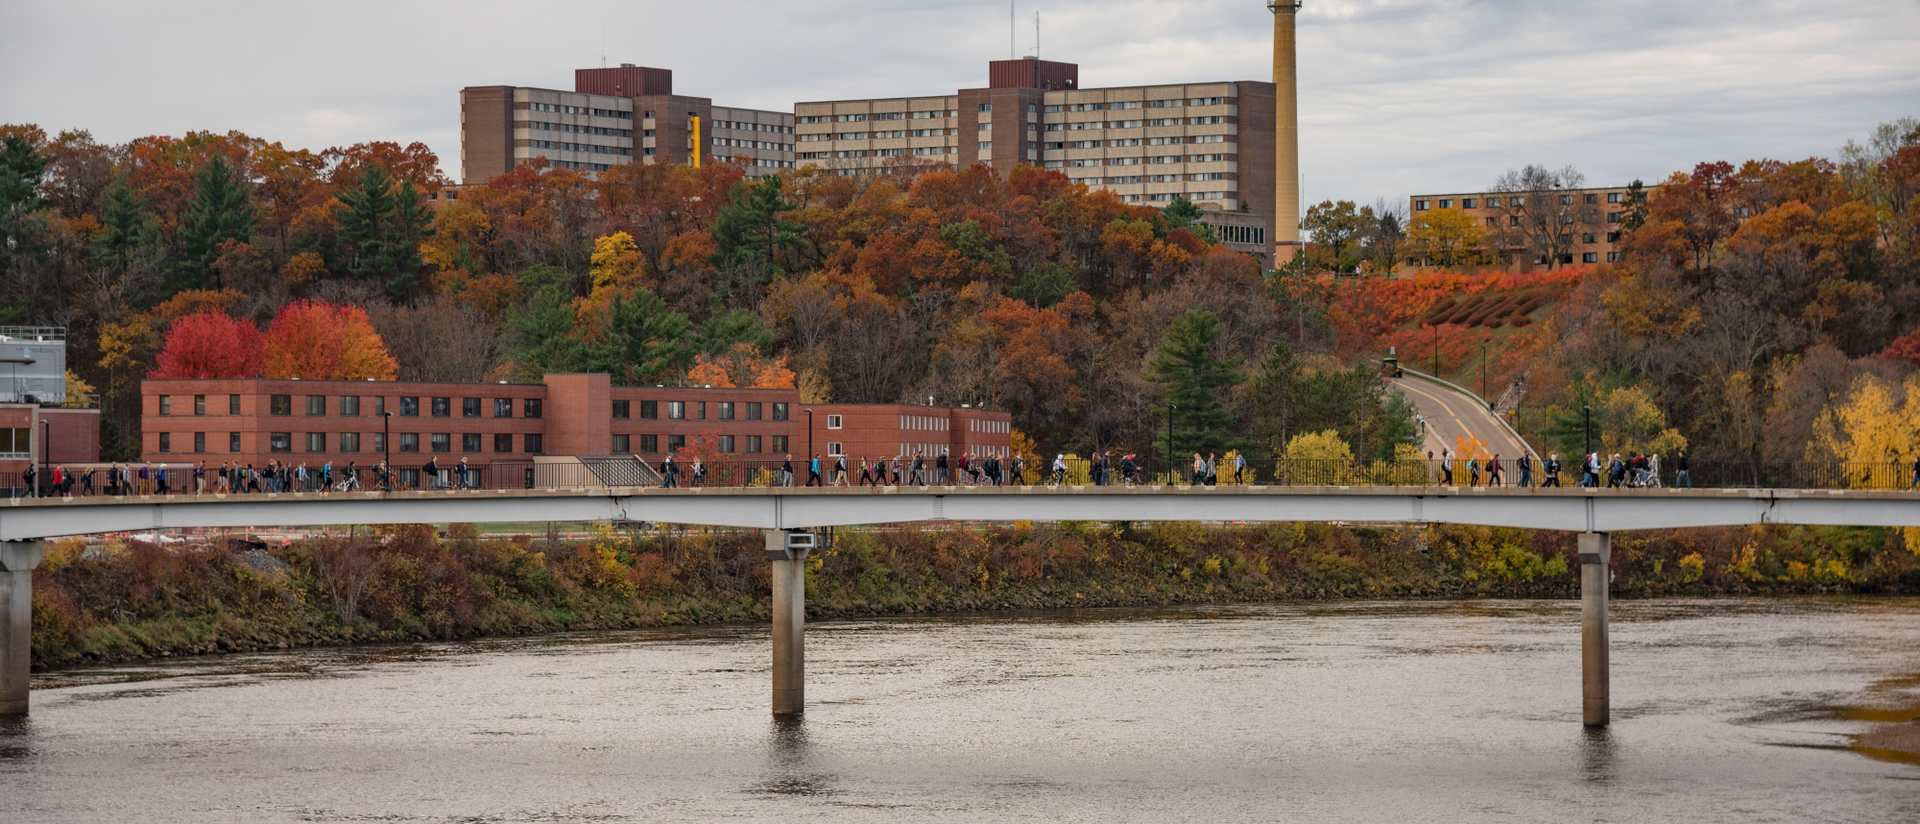 UW-Eau Claire campus on a beautiful fall day